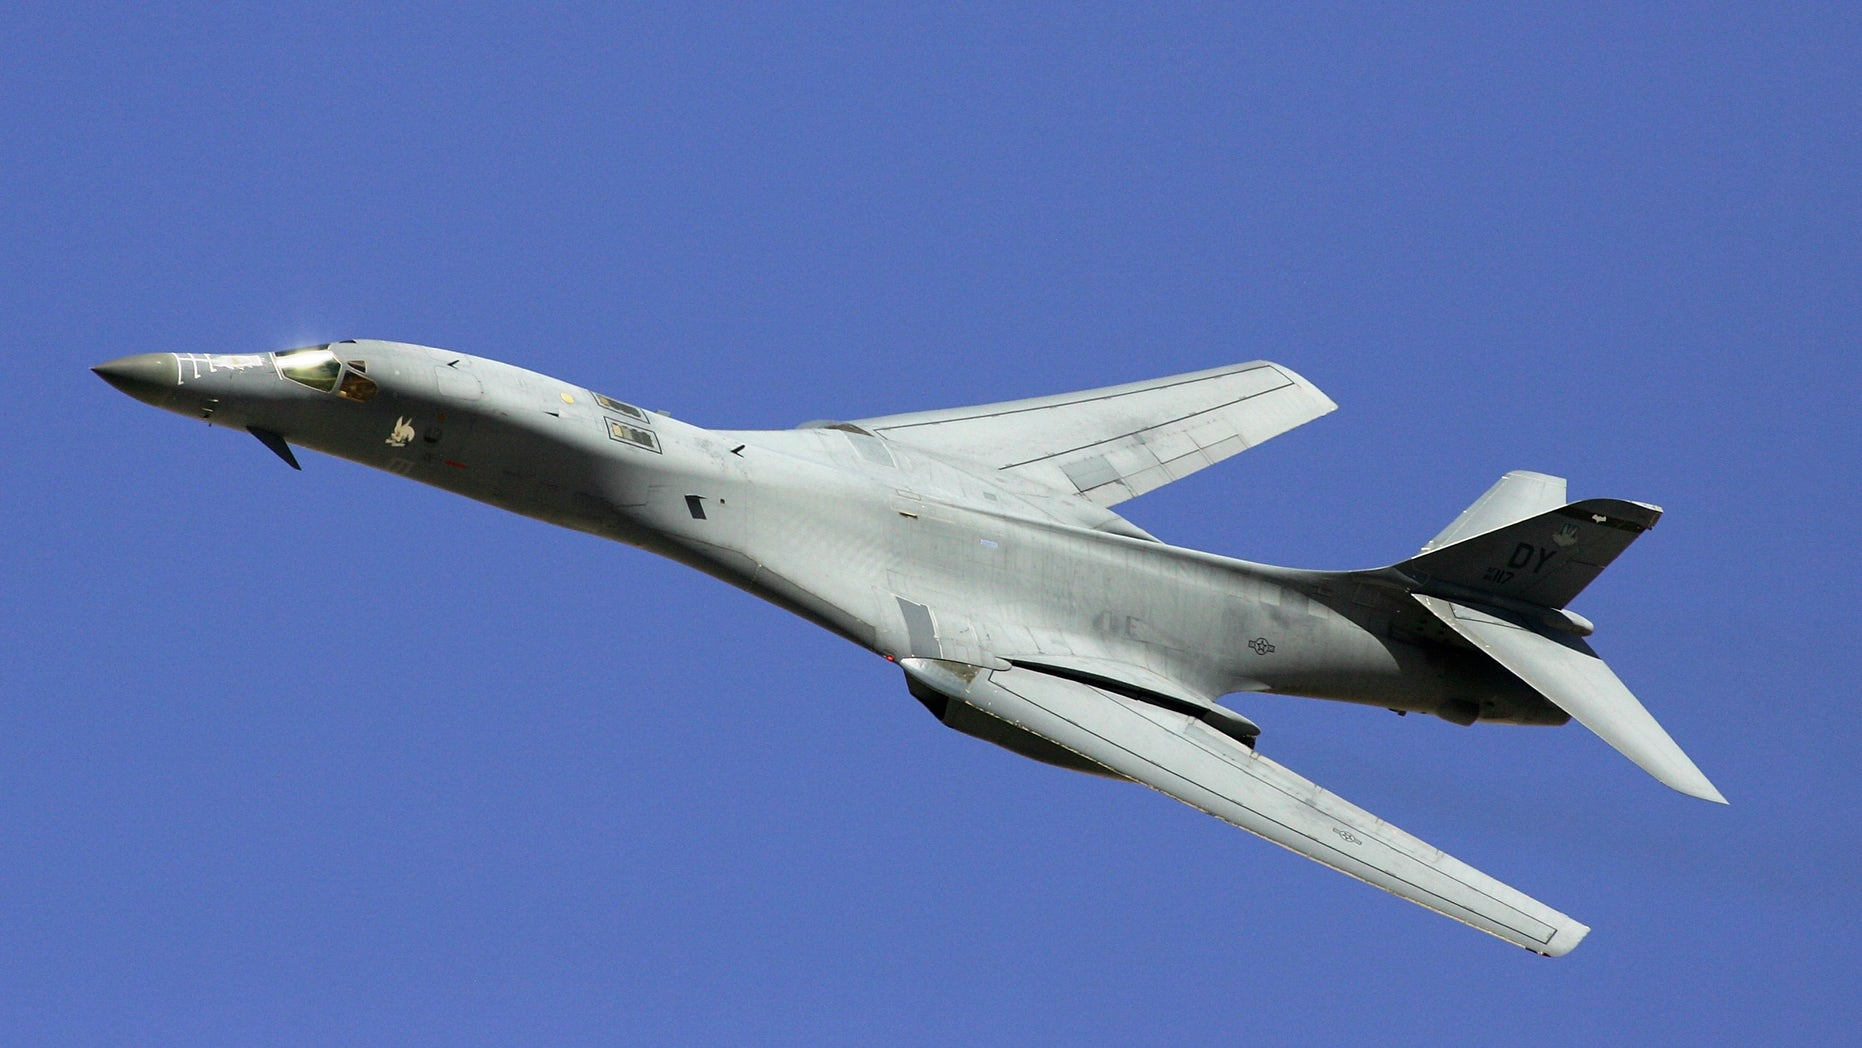 A B-1B Lancer during a U. S. Air Force firepower demonstration near Indian Springs, Nev., in 2007. The Air Forceannounced it's grounding its entire fleet of B-1B bombers. (Ethan Miller/Getty Images, File)